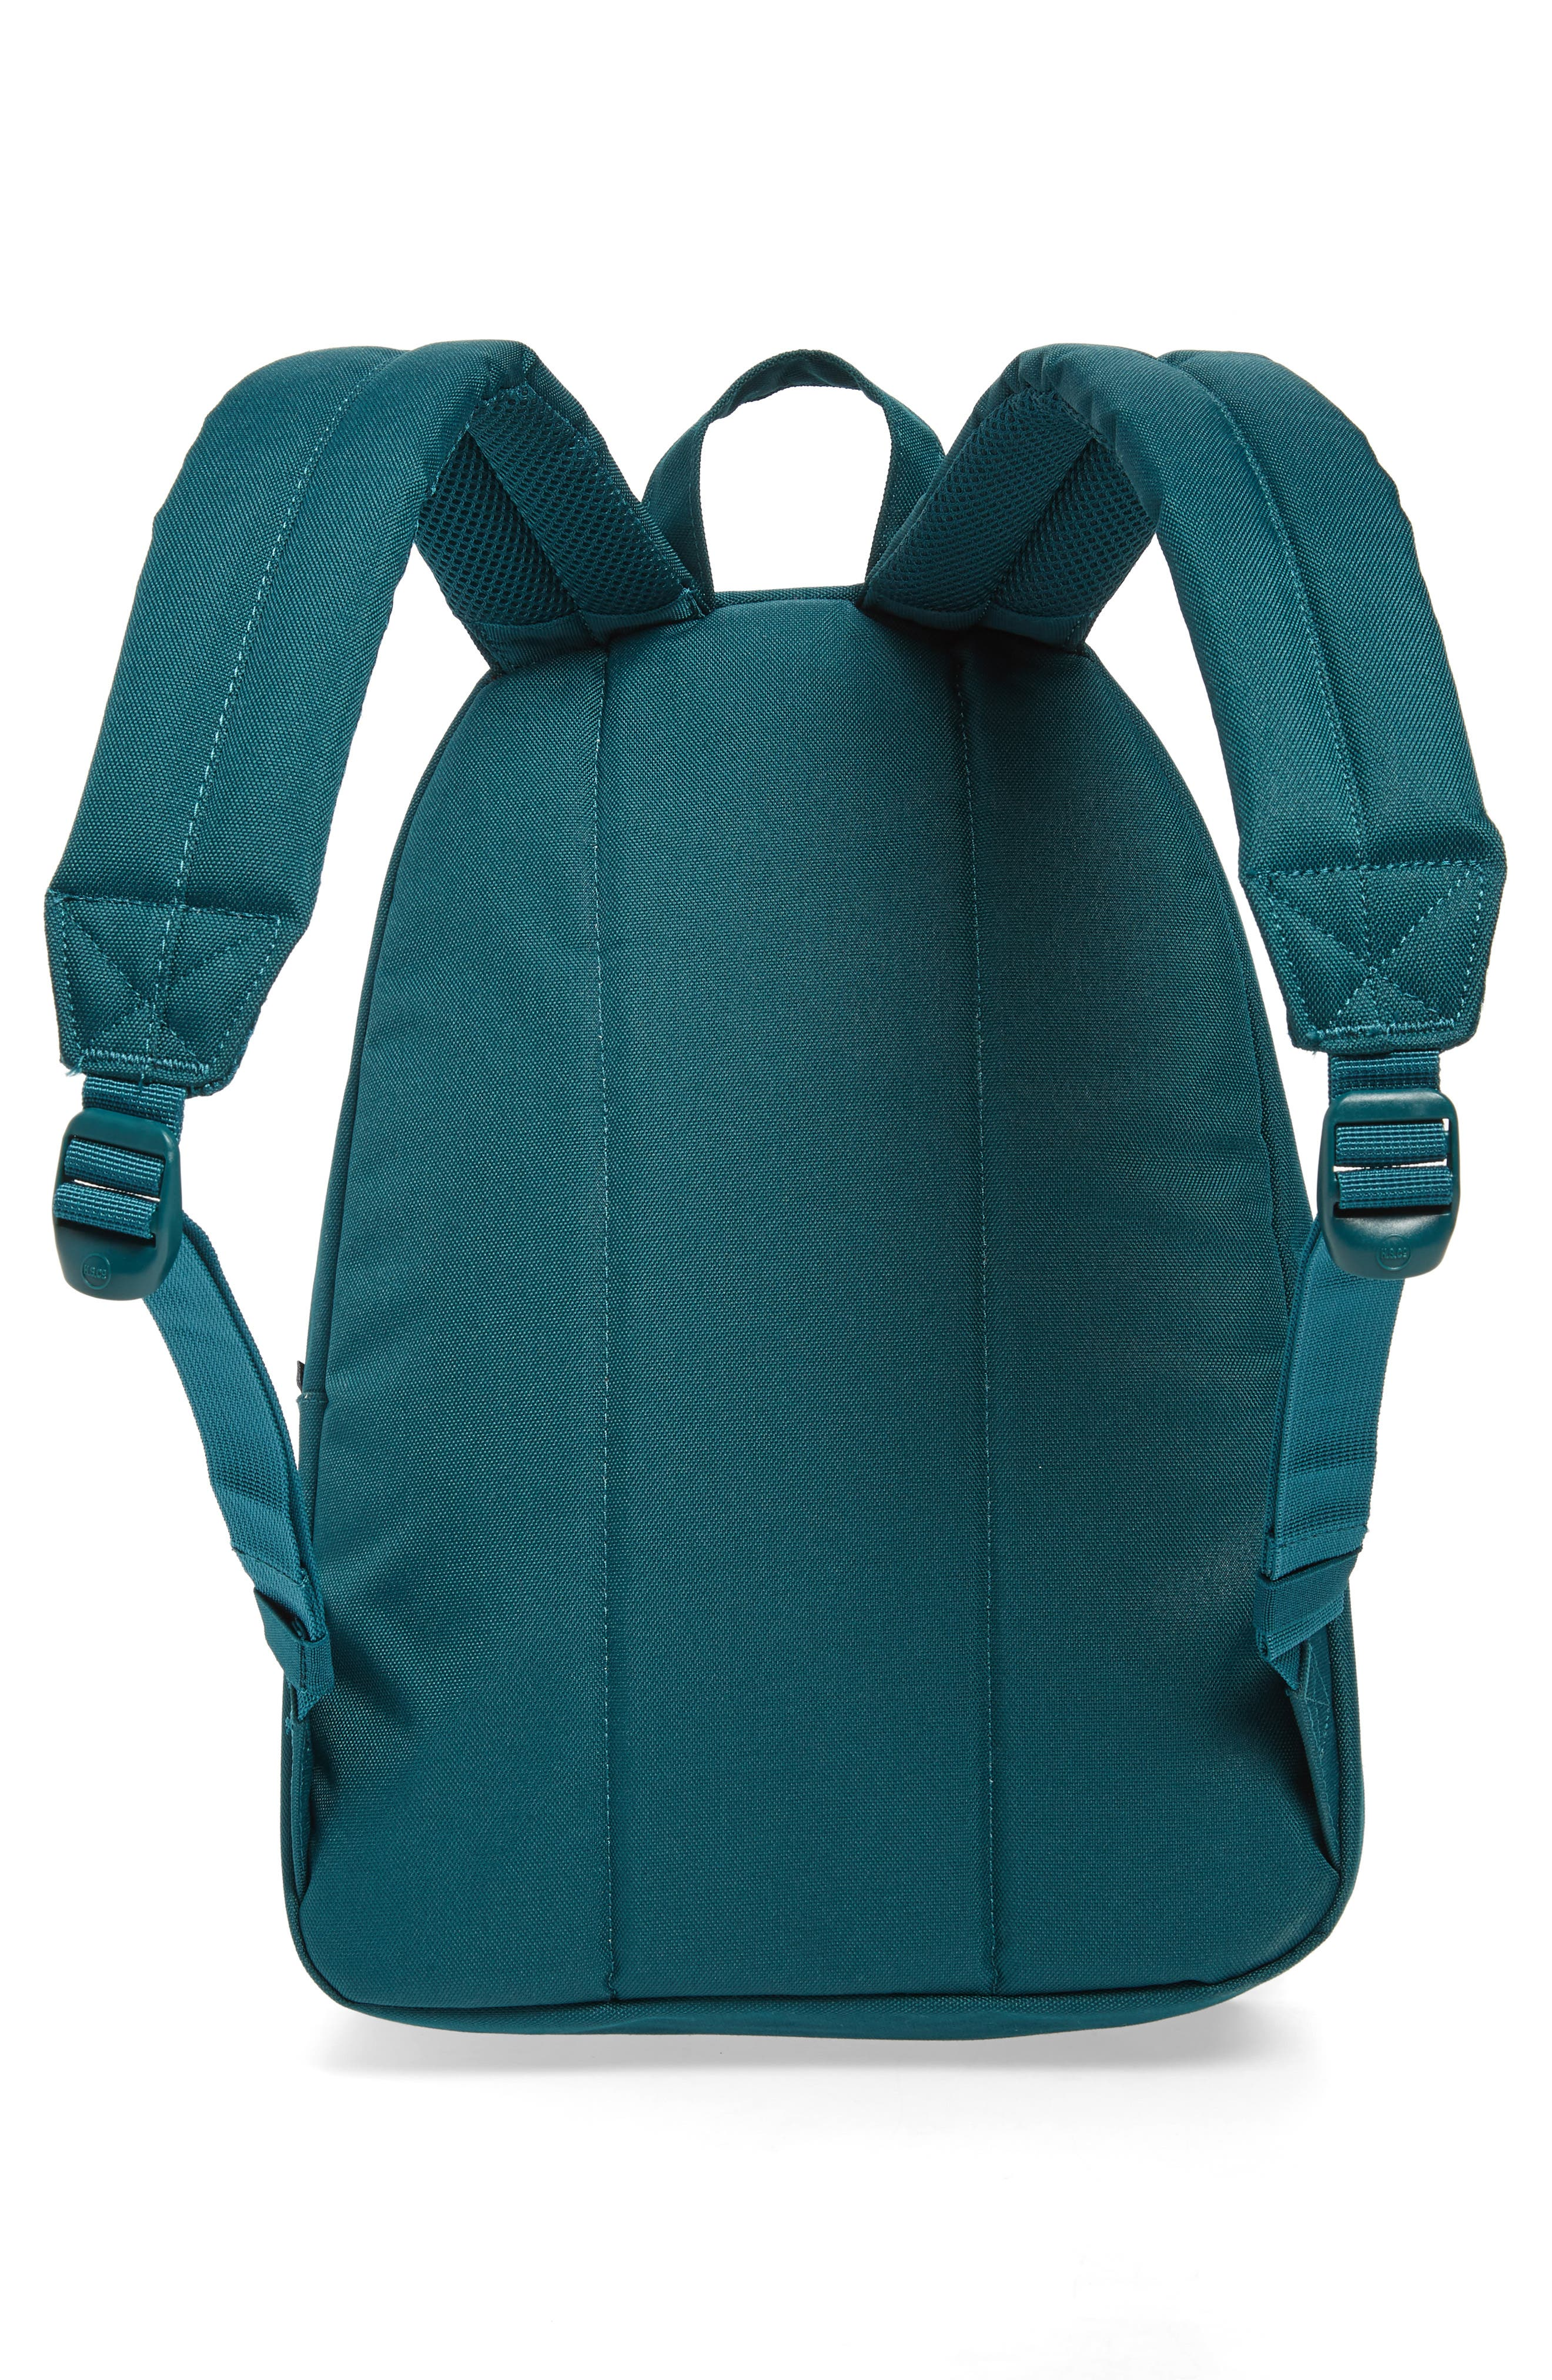 Classic Mid Volume Backpack,                             Alternate thumbnail 3, color,                             DEEP TEAL